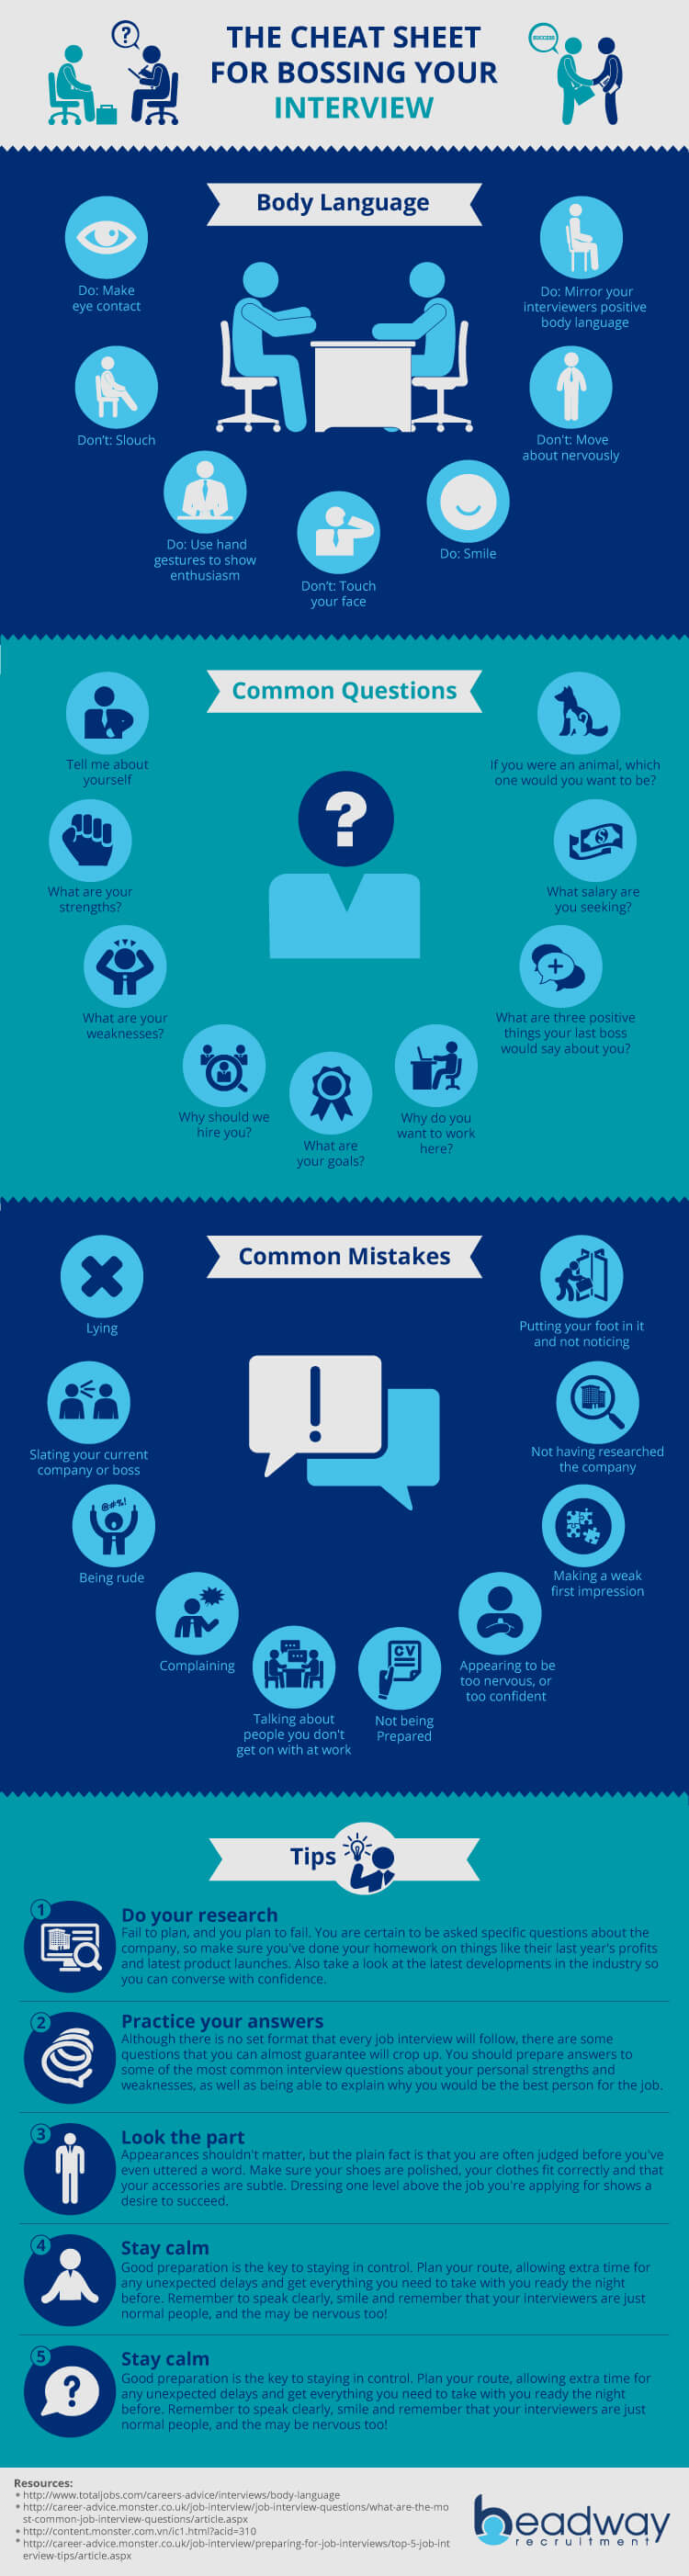 Infographic: The cheat sheet for bossing your interview